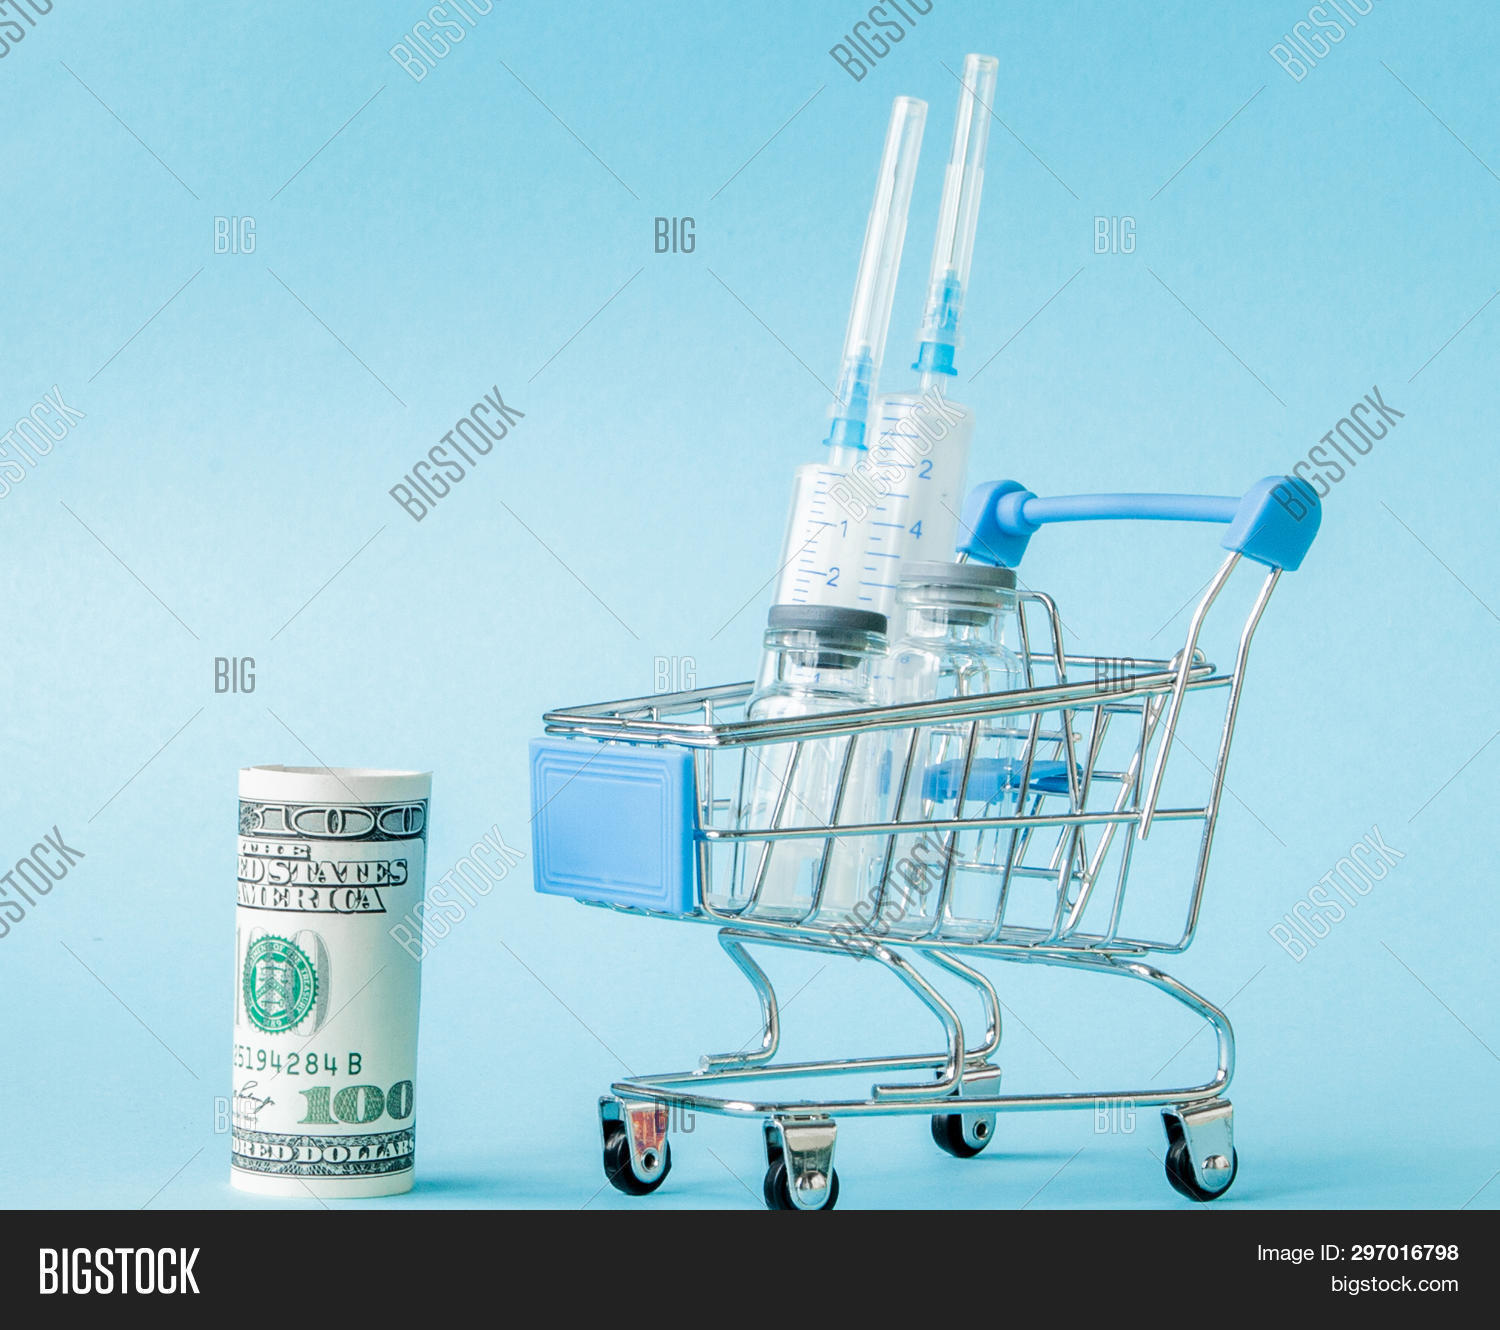 Medical Injection And Dollars In Shopping Trolley On Blue Background. Creative Idea For Health Care